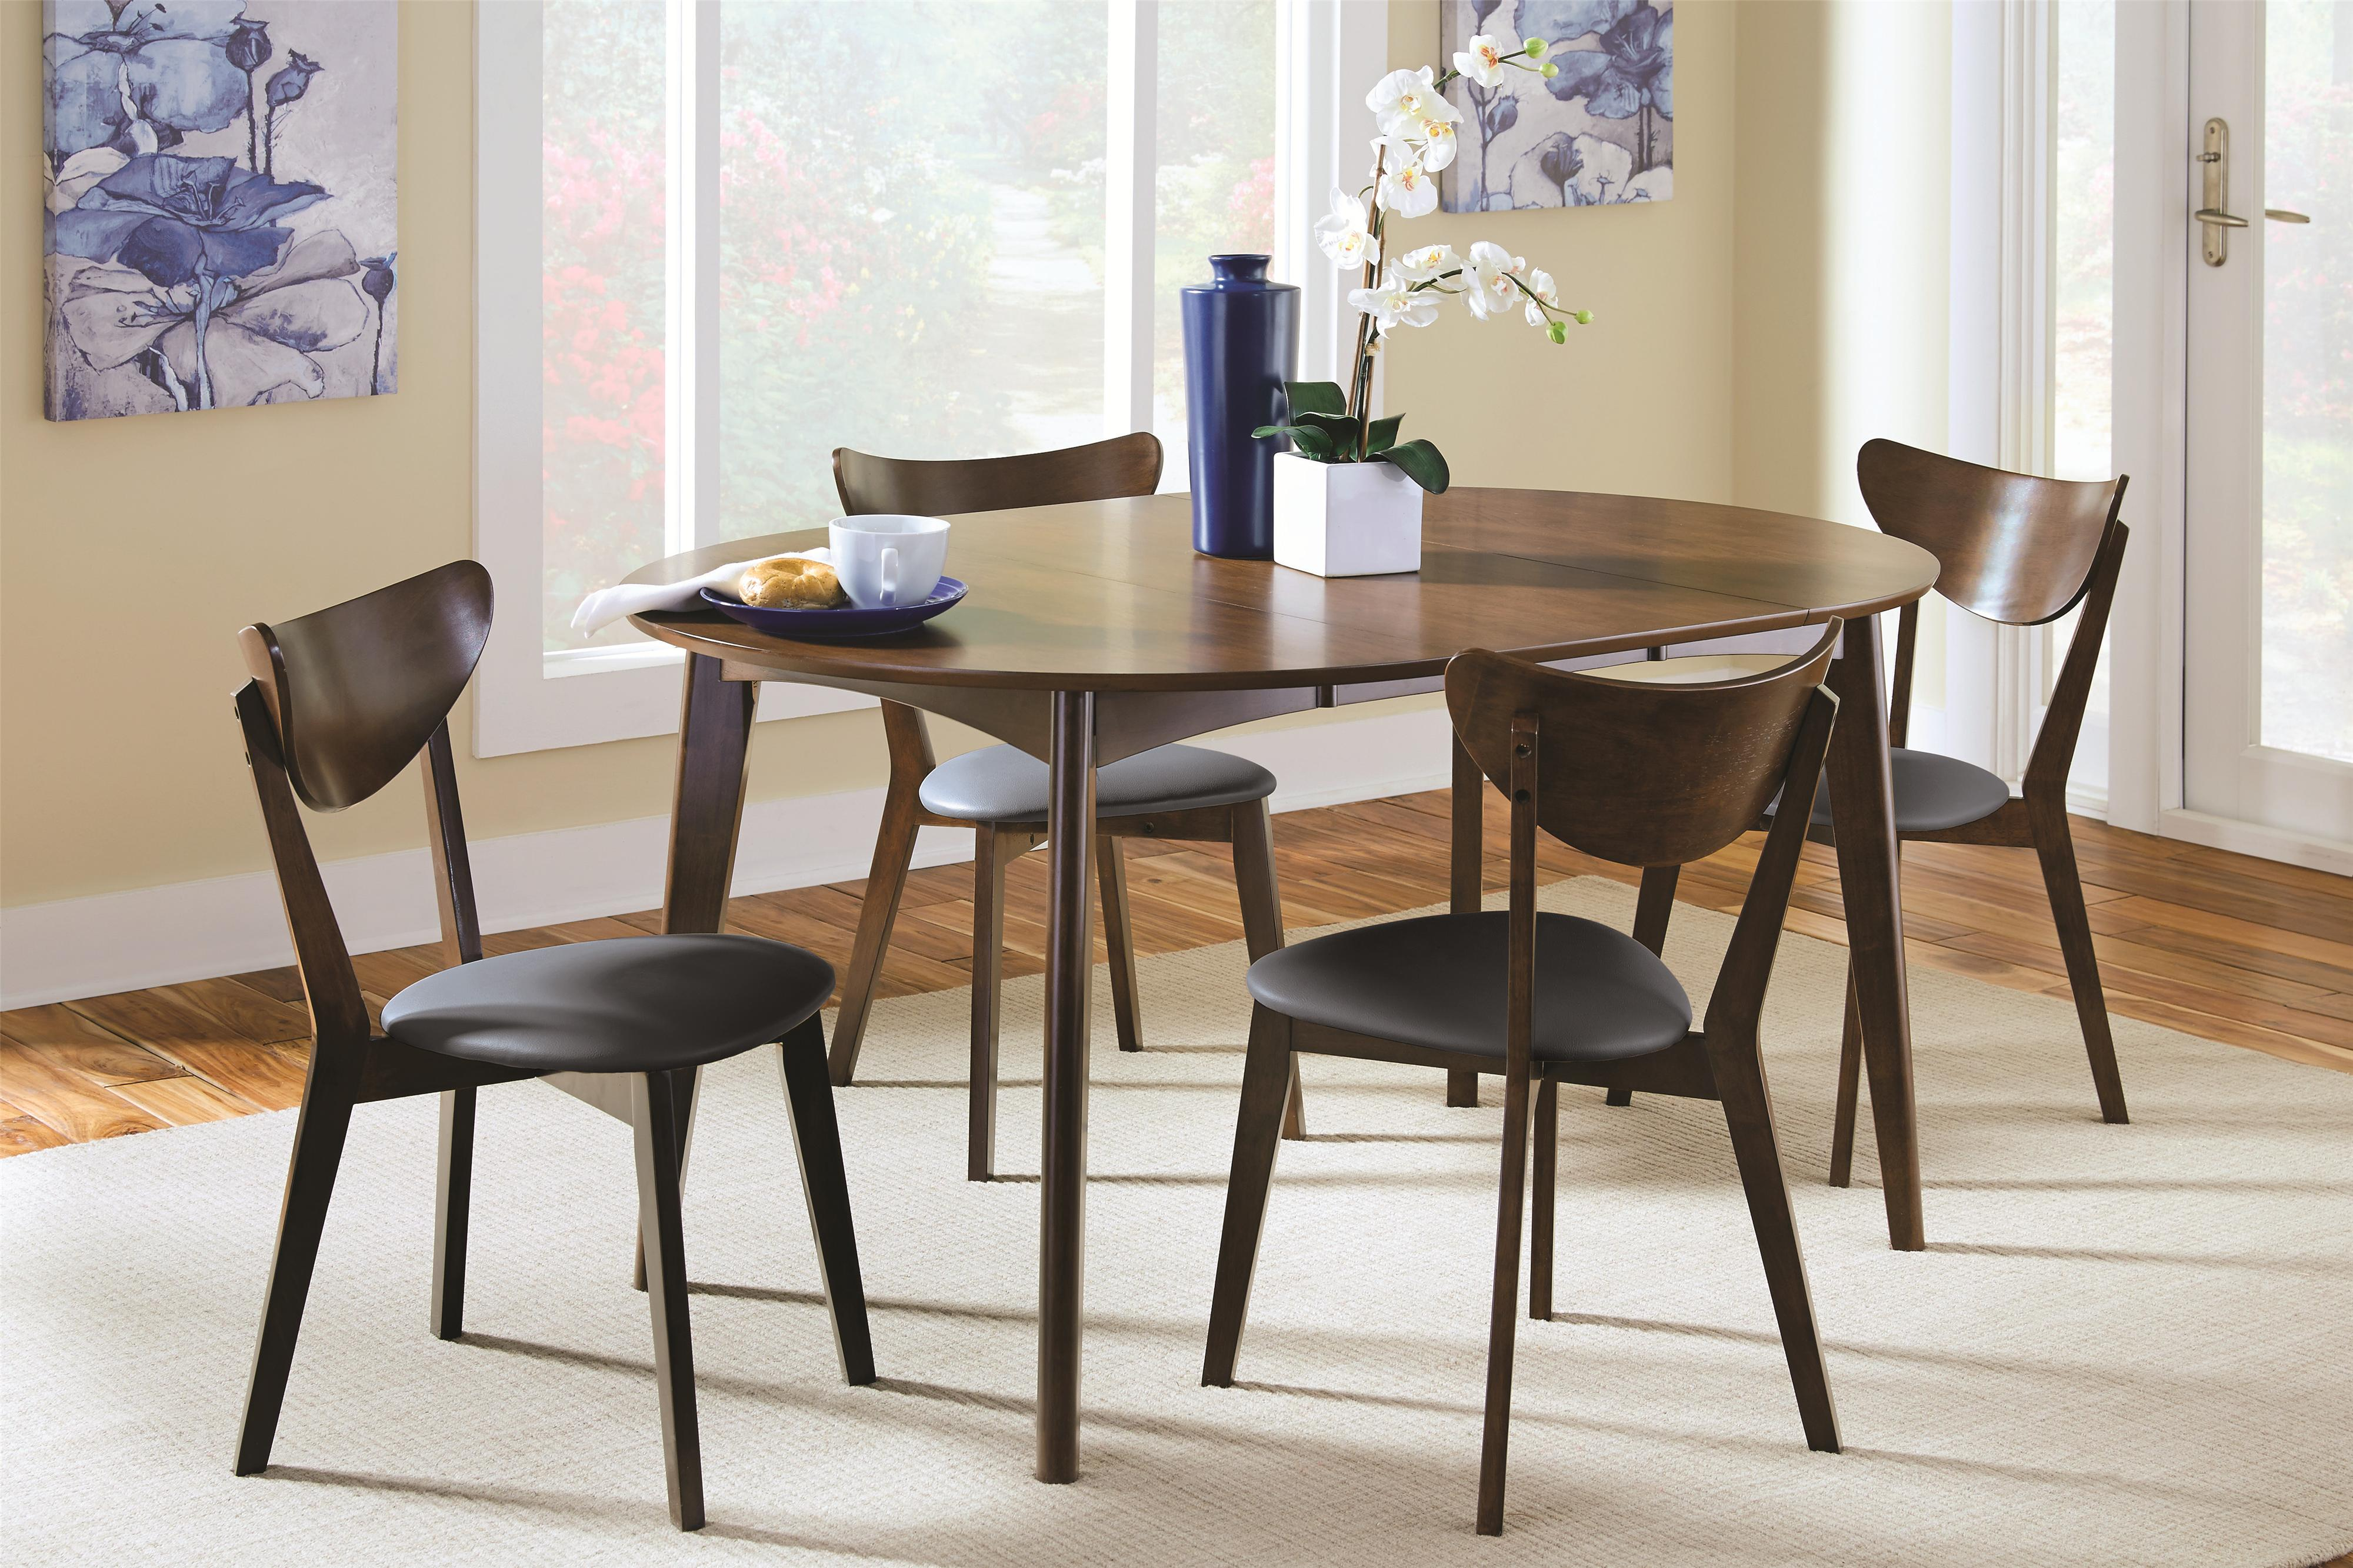 Coaster Malone 5 Piece Dining Set - Item Number 105361+4x62 & Coaster Malone Mid-century Modern 5-Piece Solid Wood Dining Set ...